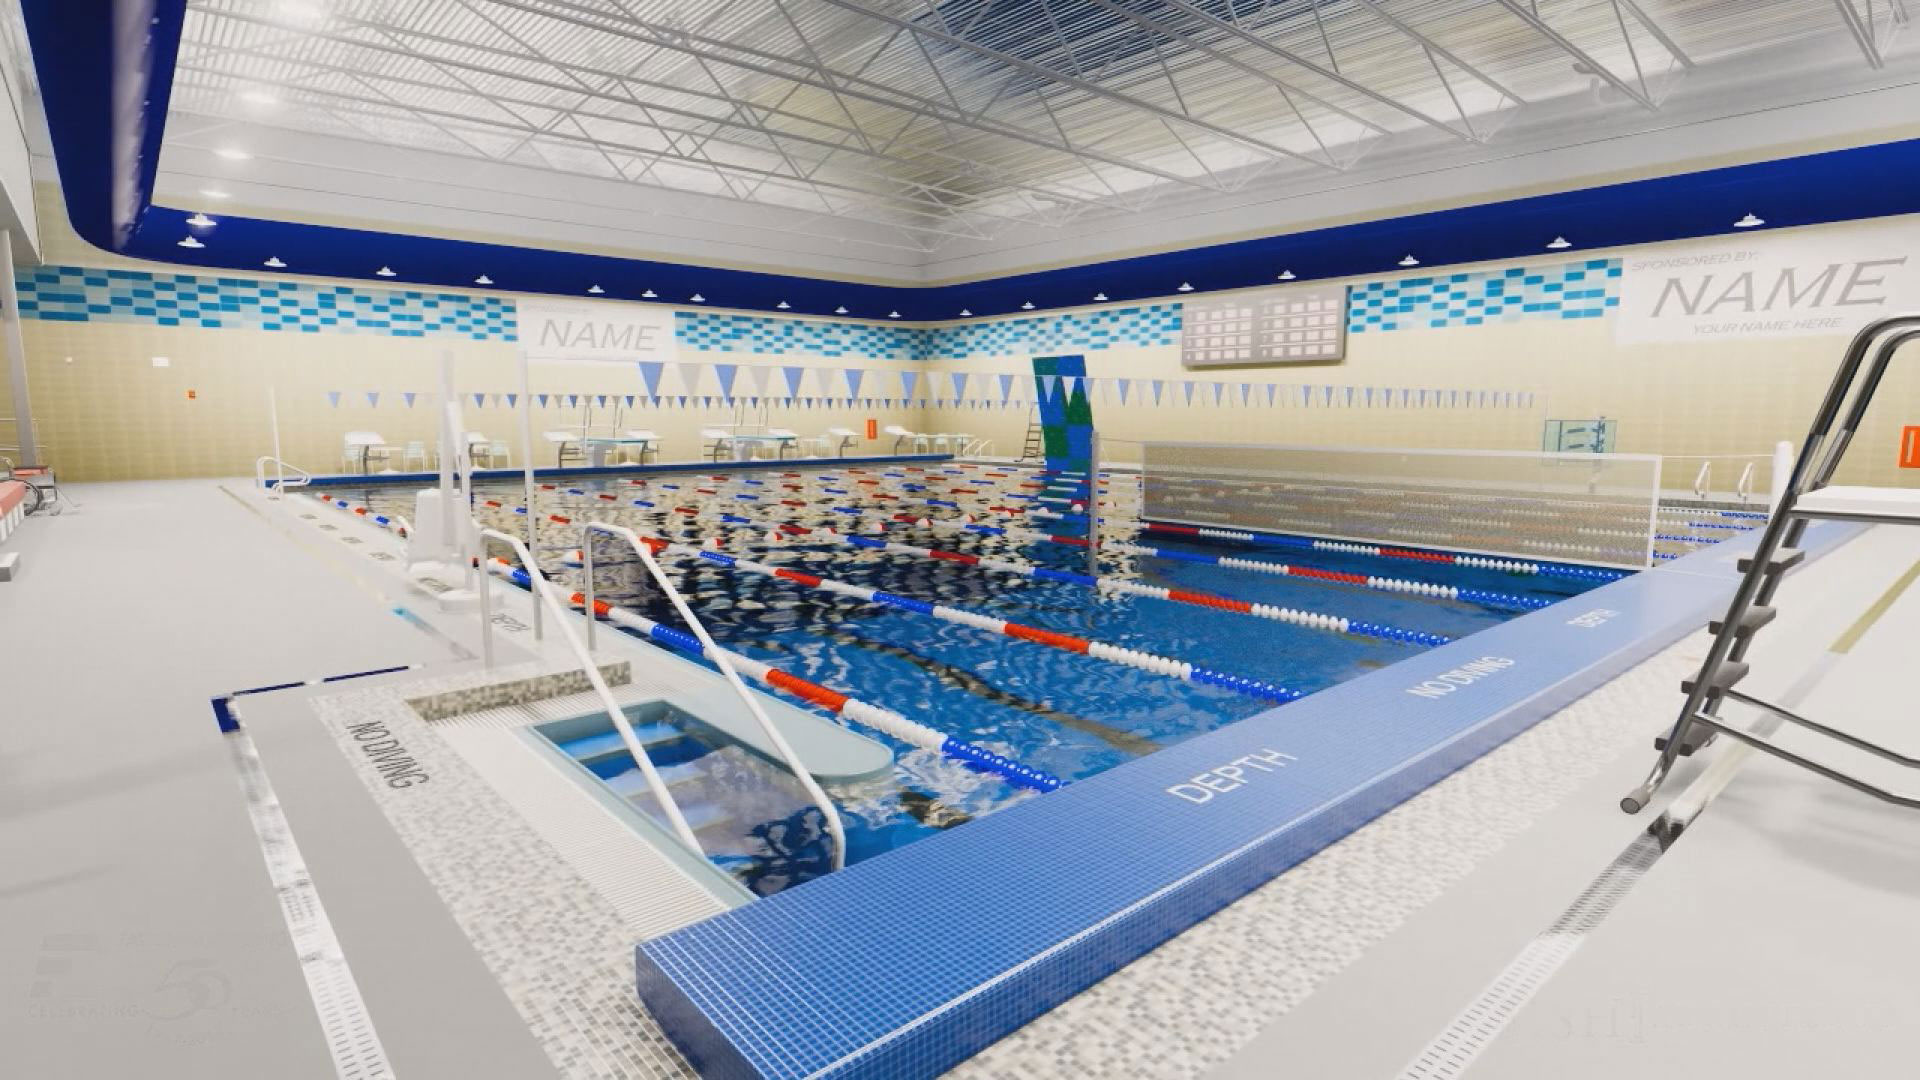 lap pool area proposed Mitchell aquatic center